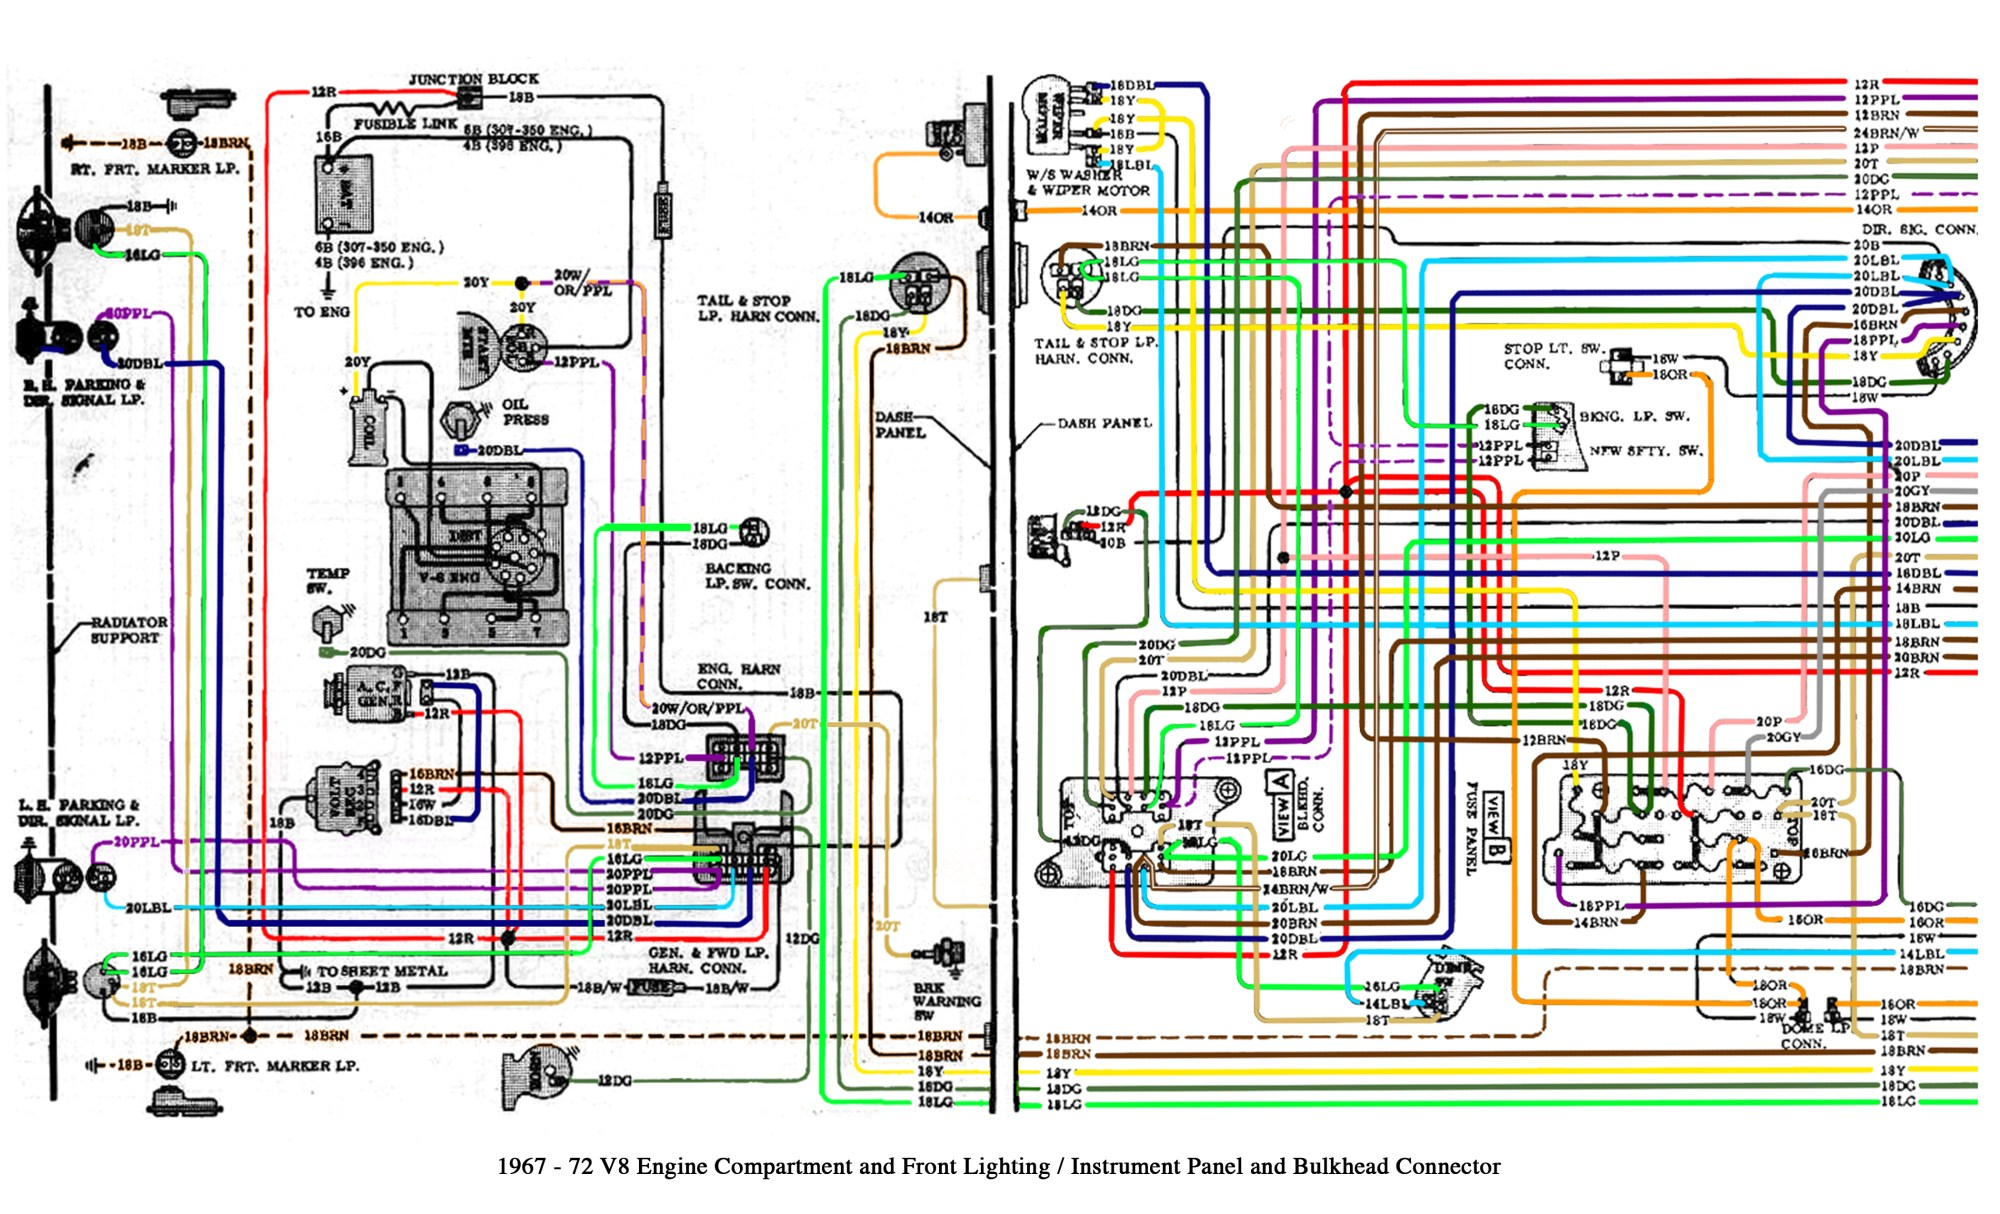 hight resolution of 1967 chevelle malibu hot radio fuse box wiring diagram 1967 chevelle malibu hot radio fuse box